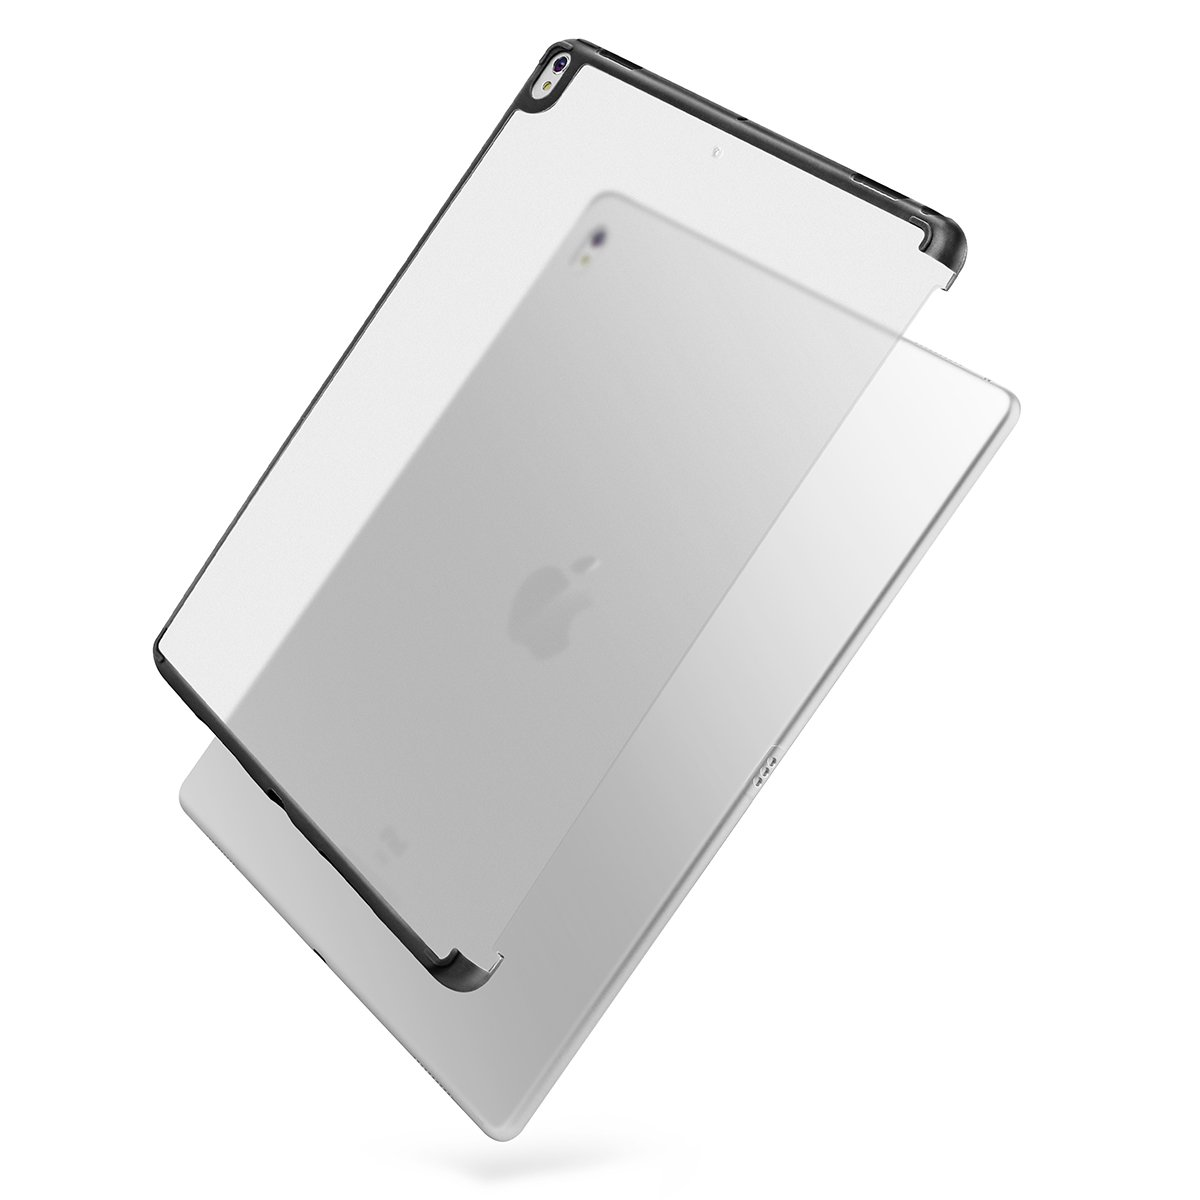 AICase iPad Pro 10.5 2017 Case, Clear Hard Case [Perfect Match Official Smart Keyboard] Soft TPU Bumper [Corner Protection] Slim Fit Back Cover iPad Pro10.5 2017 Release (iPad Pro 10.5) by AICase